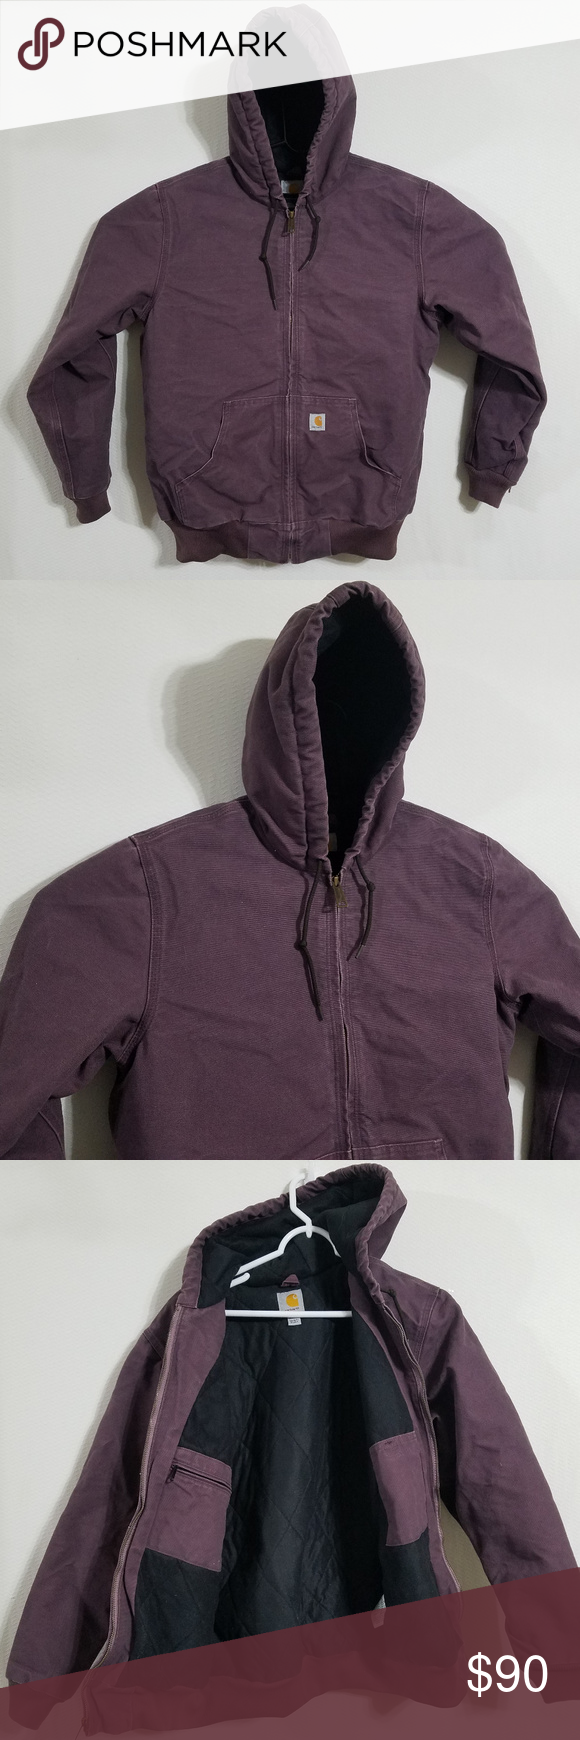 Carhartt Womens Medium Coat Heavy Winter Jacket Carhartt Women's Jacket  PRODUCT DETAILS Brand - Carhartt Color - Purple Size - Women's Medium Condition - Excellent Style - Heavy Insulated Winter Coat  MEASUREMENTS (in inches / Lay Flat) Top to Bottom Length - 27 Pit to Pit -  22  See something you like.  Send me an offer!                    #TAGS - Coats Jackets Insulated Down Cold Weather Gear Full Zip Up Thermal Waterproof Shell Carhart Carrhartt Carrhart Carhartt Jackets & Coats #carharttwomen